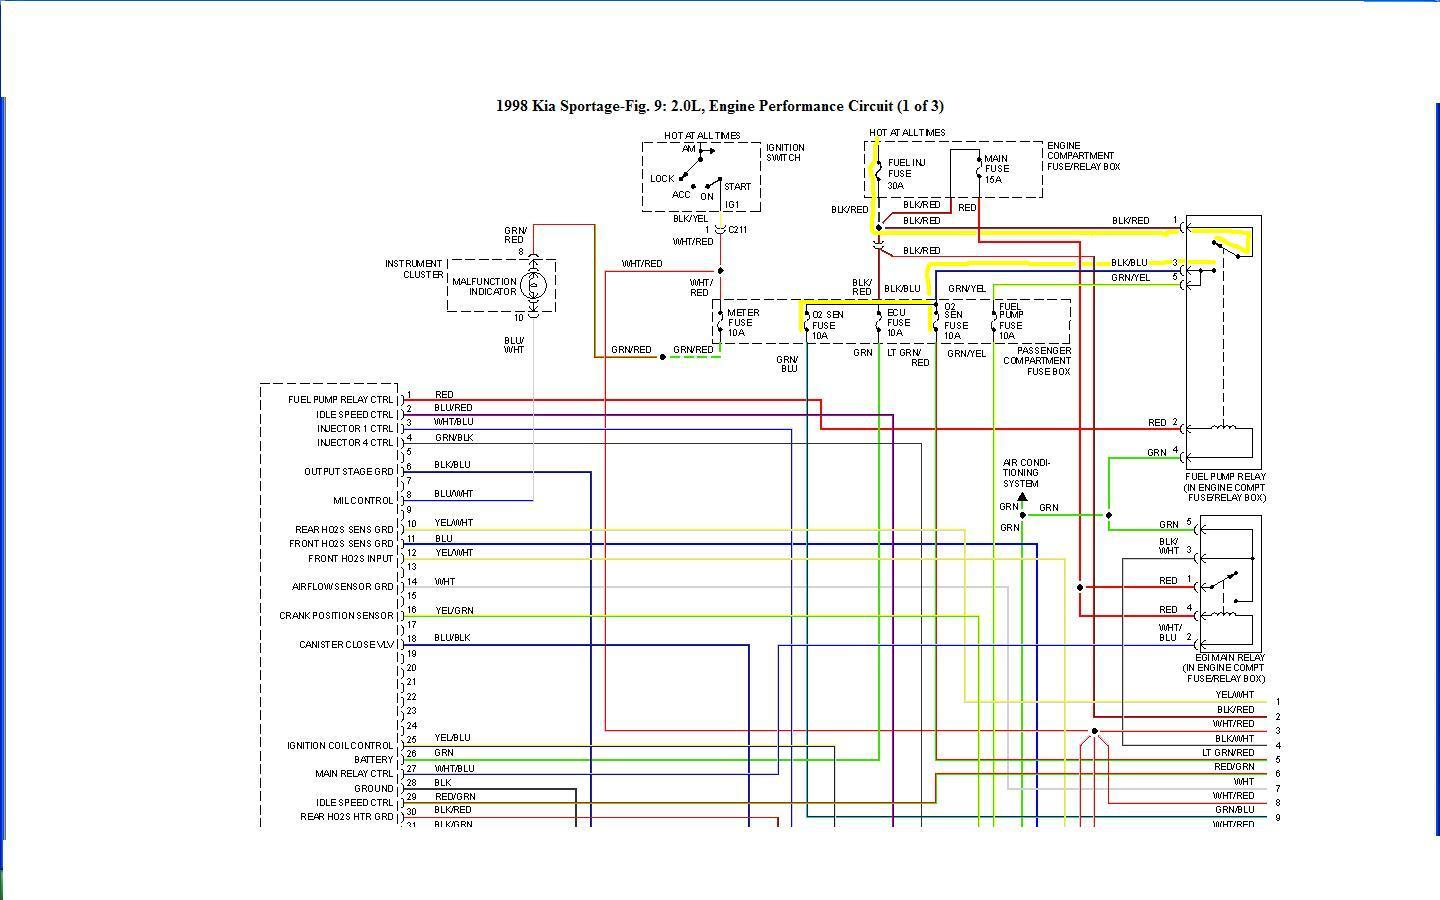 2009 Kia Sportage Radio Wiring - top electrical wiring diagram Kia Sportage Tdi Wiring Diagram on kia to boss wiring, mazda 626 wiring diagrams, jeep liberty wiring diagrams, mercedes c230 wiring diagrams, plymouth prowler wiring diagrams, chevrolet colorado wiring diagrams, maserati biturbo wiring diagrams, kia optima wiring diagram, kia radio wiring harness, kia optima fuse diagram, kia automotive wiring diagrams, hyundai azera wiring diagrams, vw touareg wiring diagrams, bmw 5 series wiring diagrams, lotus elan wiring diagrams, hyundai genesis sedan wiring diagrams, kia sedona wiring-diagram, mitsubishi pajero wiring diagrams, bmw 528i wiring diagrams,